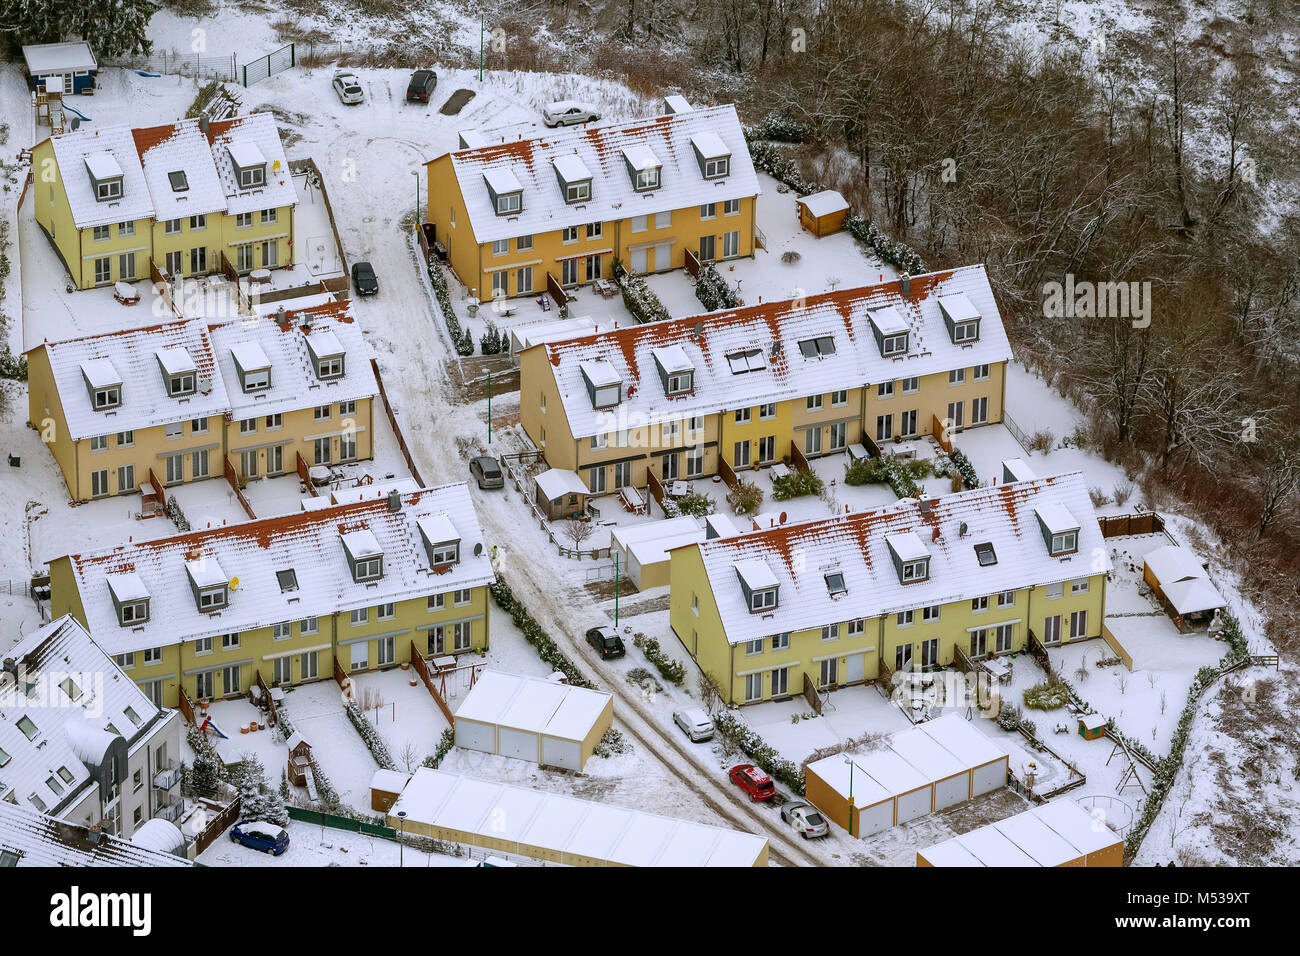 Aerial view, terraced houses, winter, snow, terraced houses Zum Kannenbach in winter, Velbert, Ruhr area, North - Stock Image